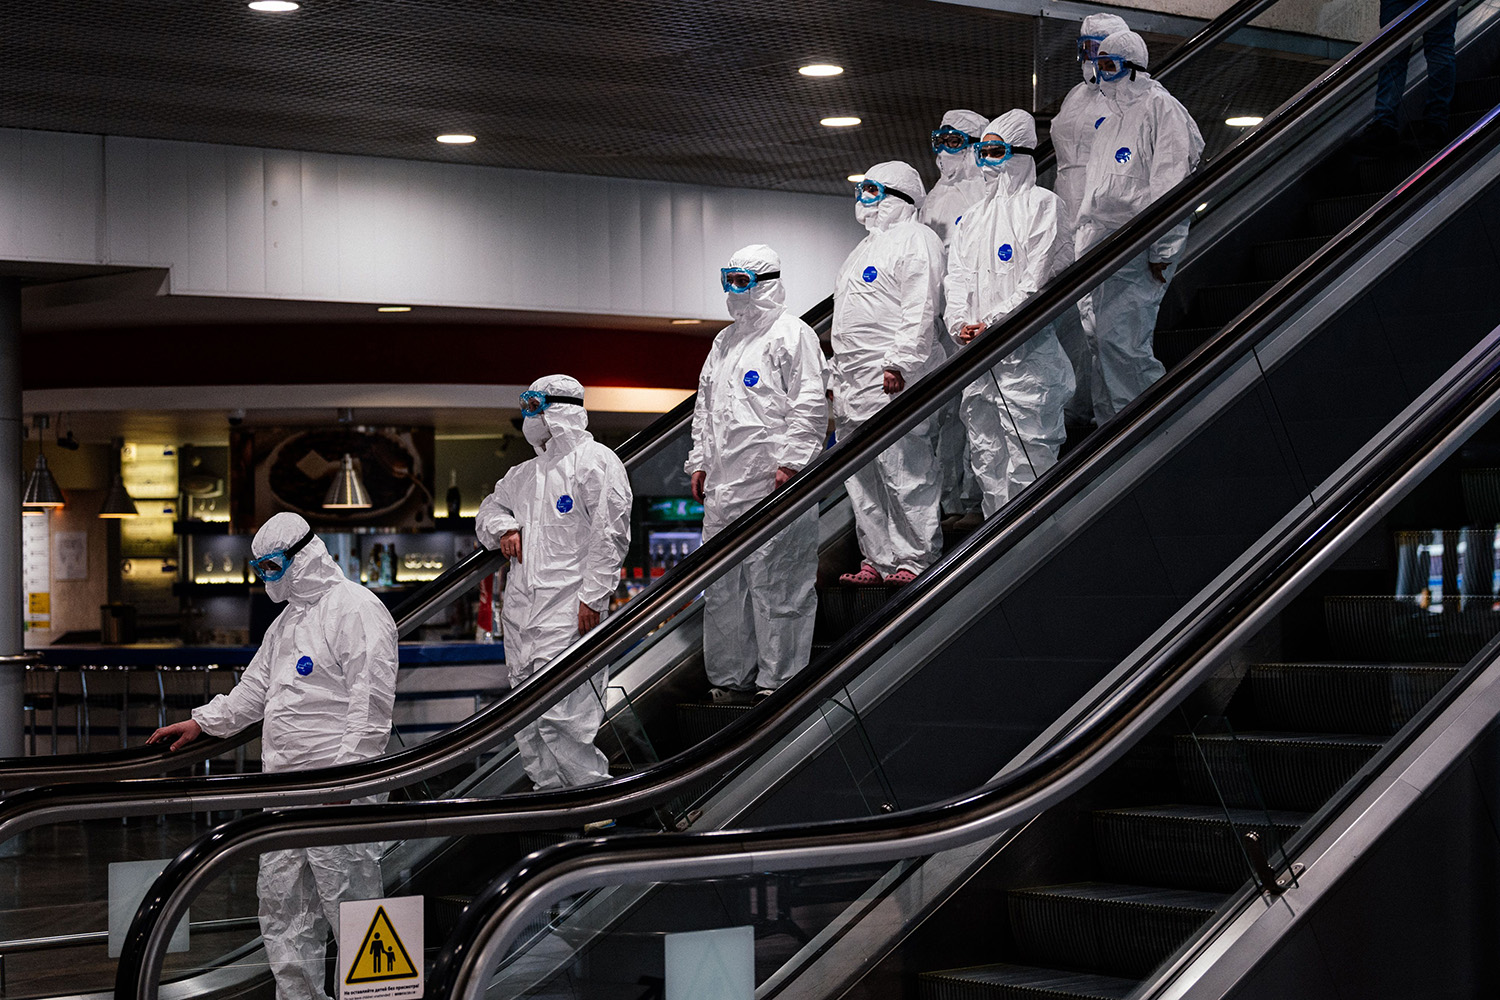 Medical staff wearing protective suits ride down an escalator at Moscow's Sheremetyevo airport March 18. DIMITAR DILKOFF/AFP via Getty Images